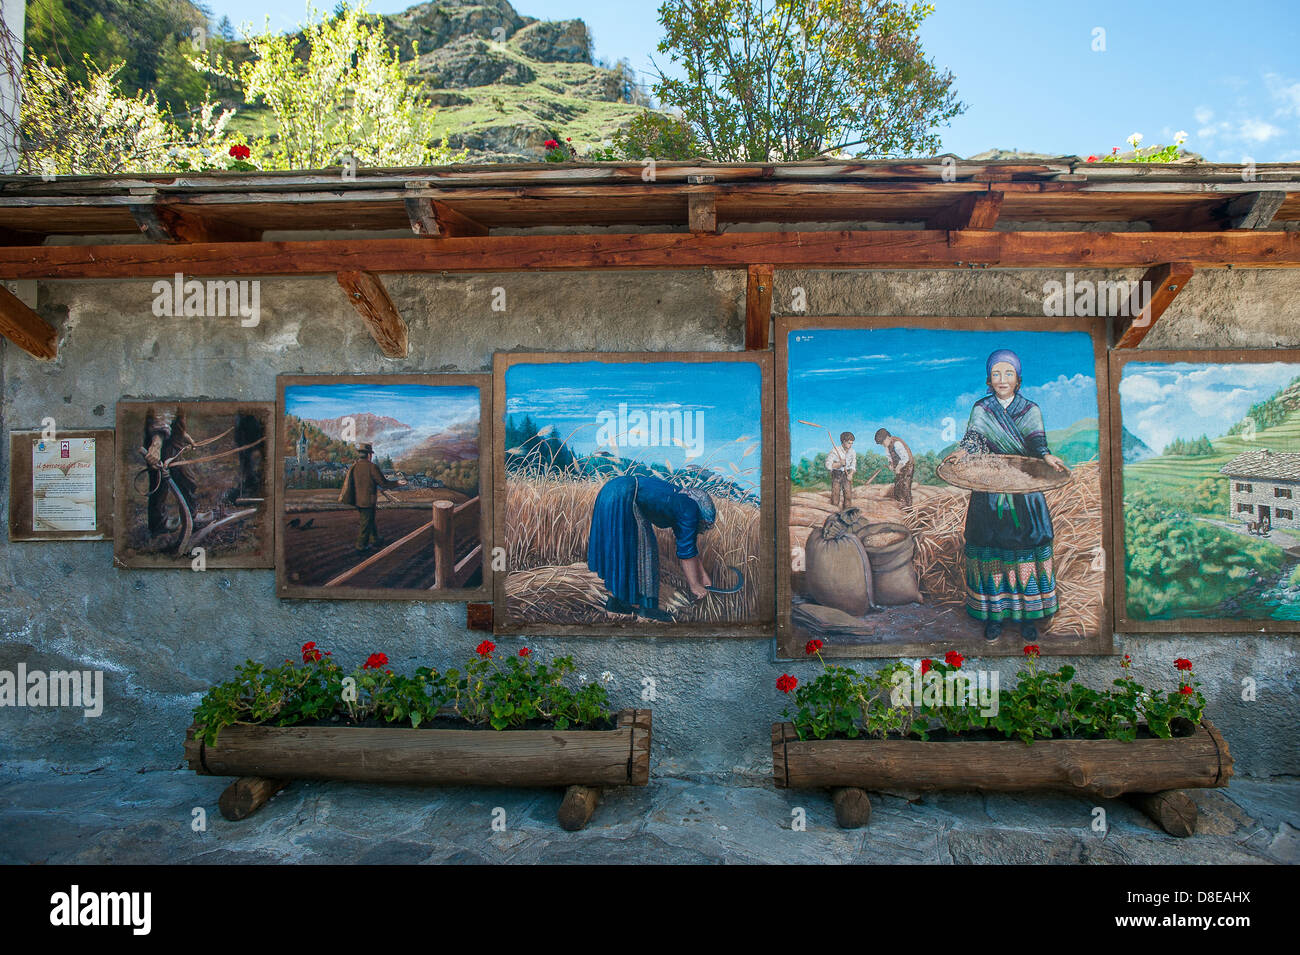 Europe Italy Province of Torino Piedmont Orsiera Rocciavriè Park Usseaux the country Painting,murals with scenes - Stock Image